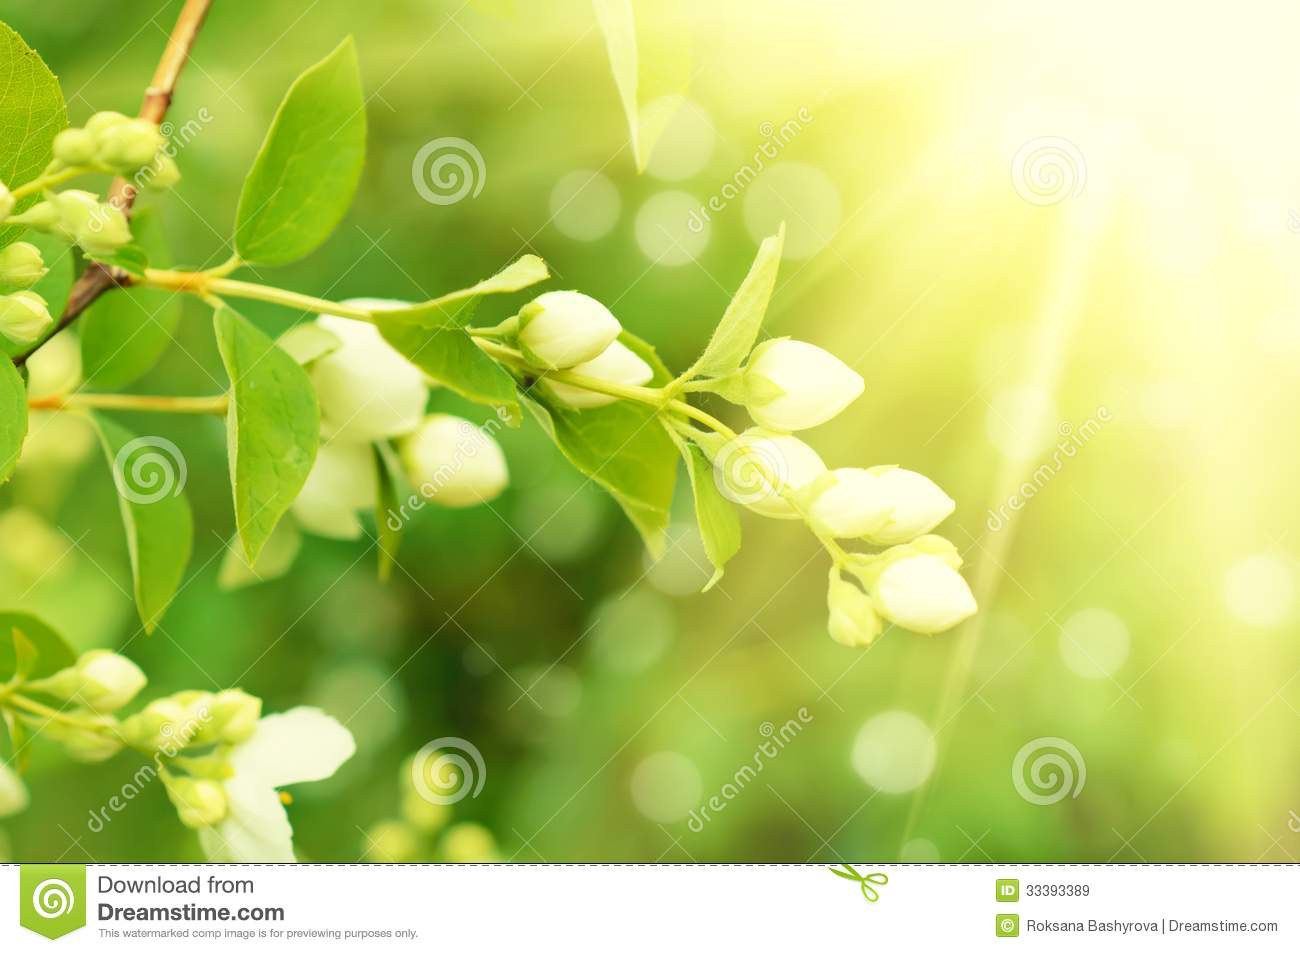 Jasmine Flower Vector Free Download Jasmine flower